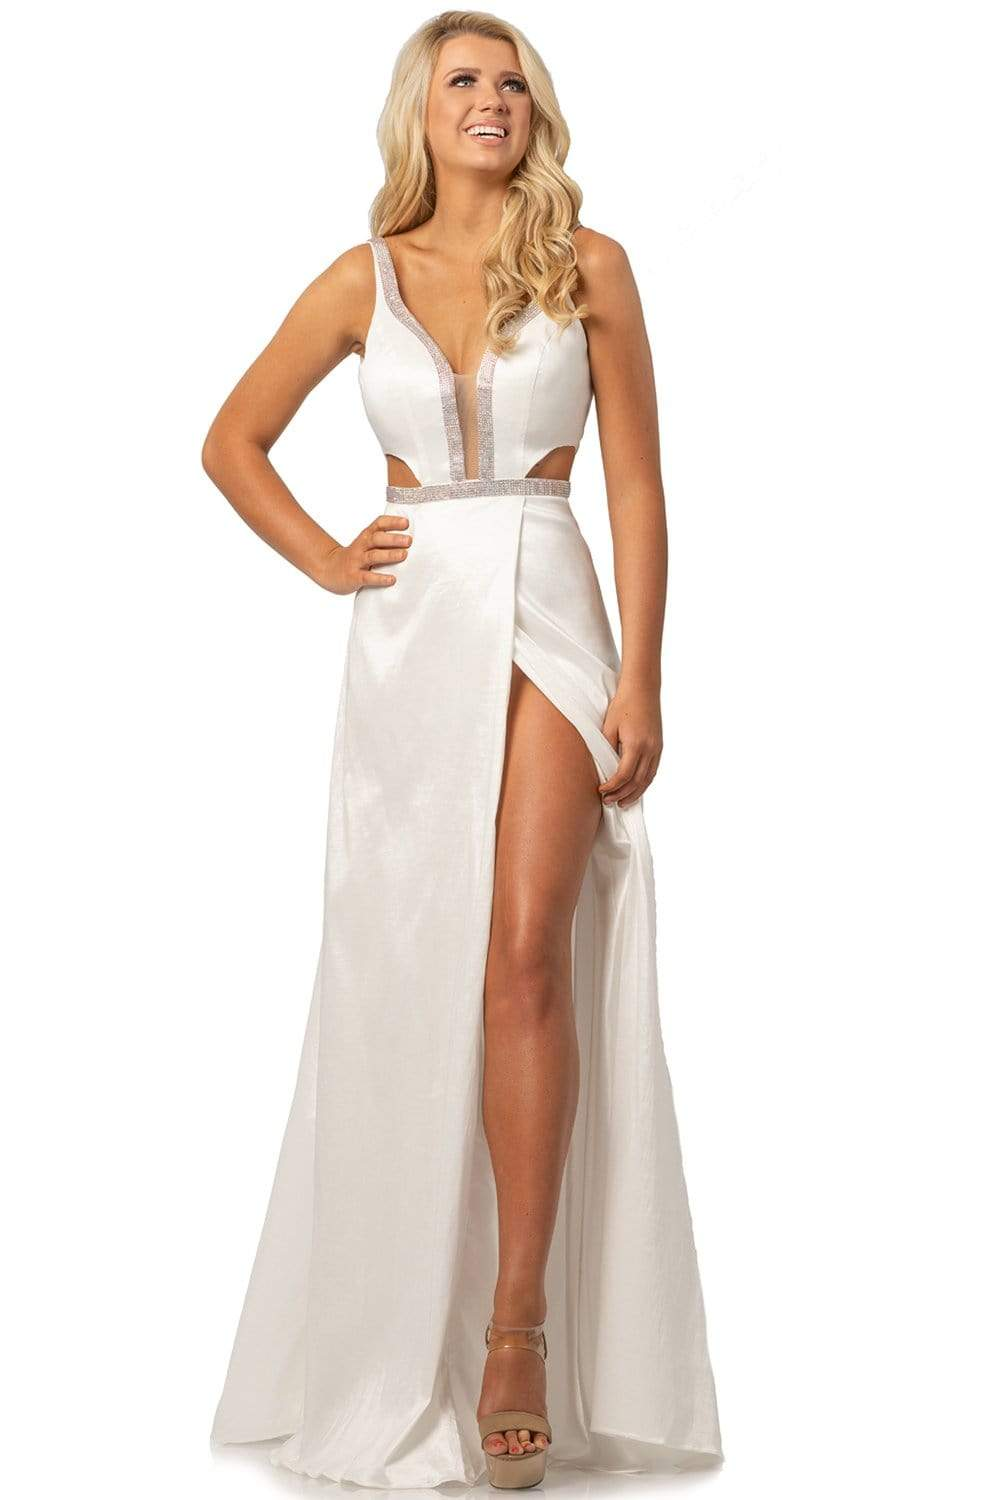 Johnathan Kayne - 2012 Plunging V-Neck Cutout High Slit Gown from Johnathan Kayne